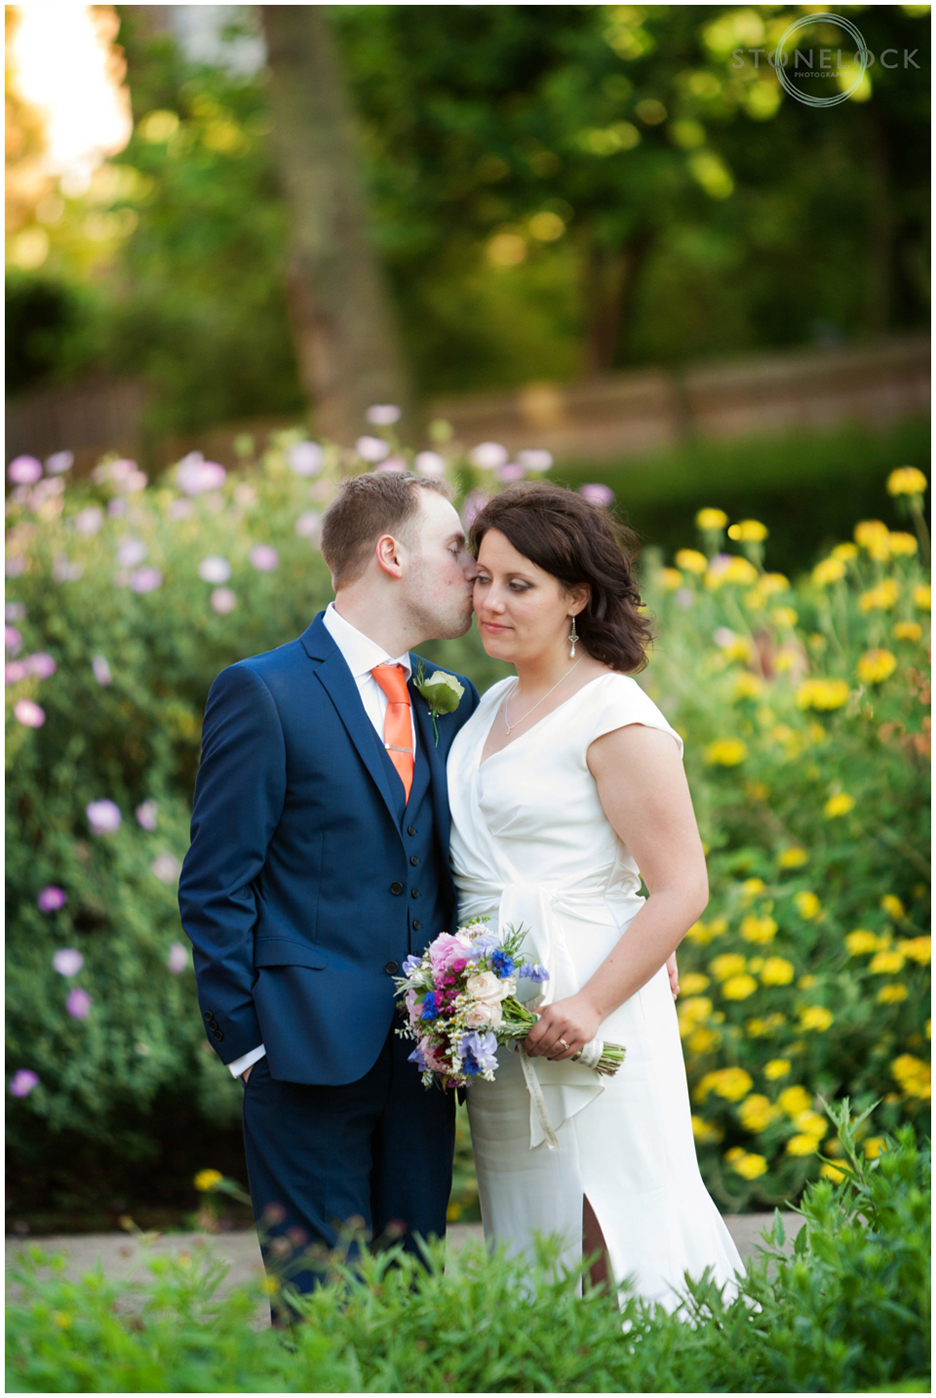 Wedding Photography in St Martin's Garden, Camden, North London